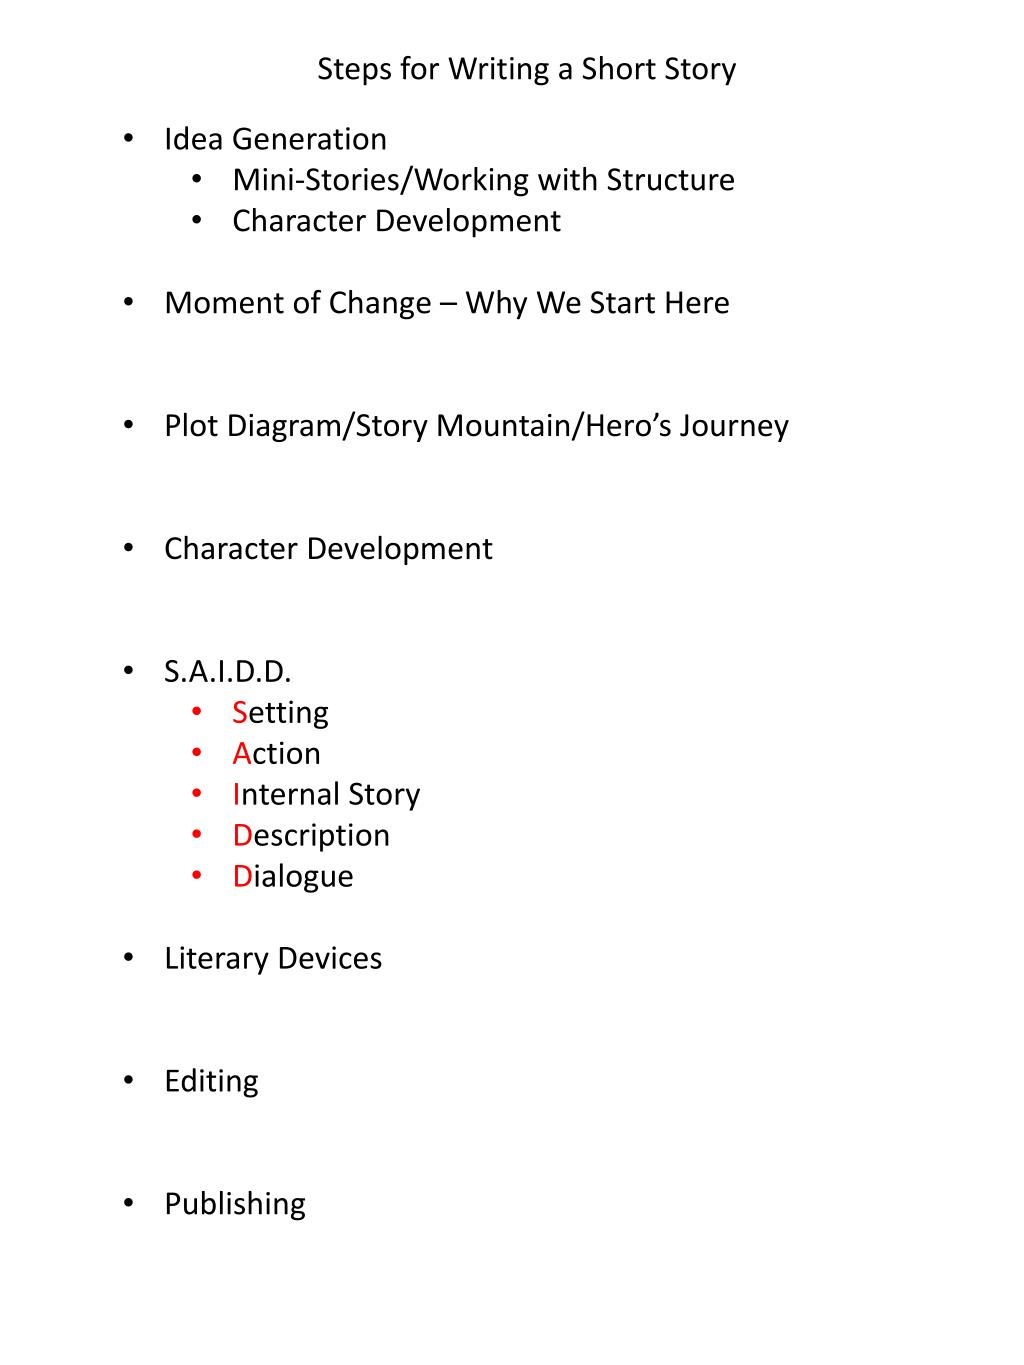 hight resolution of  character development moment of change why we start here plot diagram story mountain hero s journey character development s a i d d setting